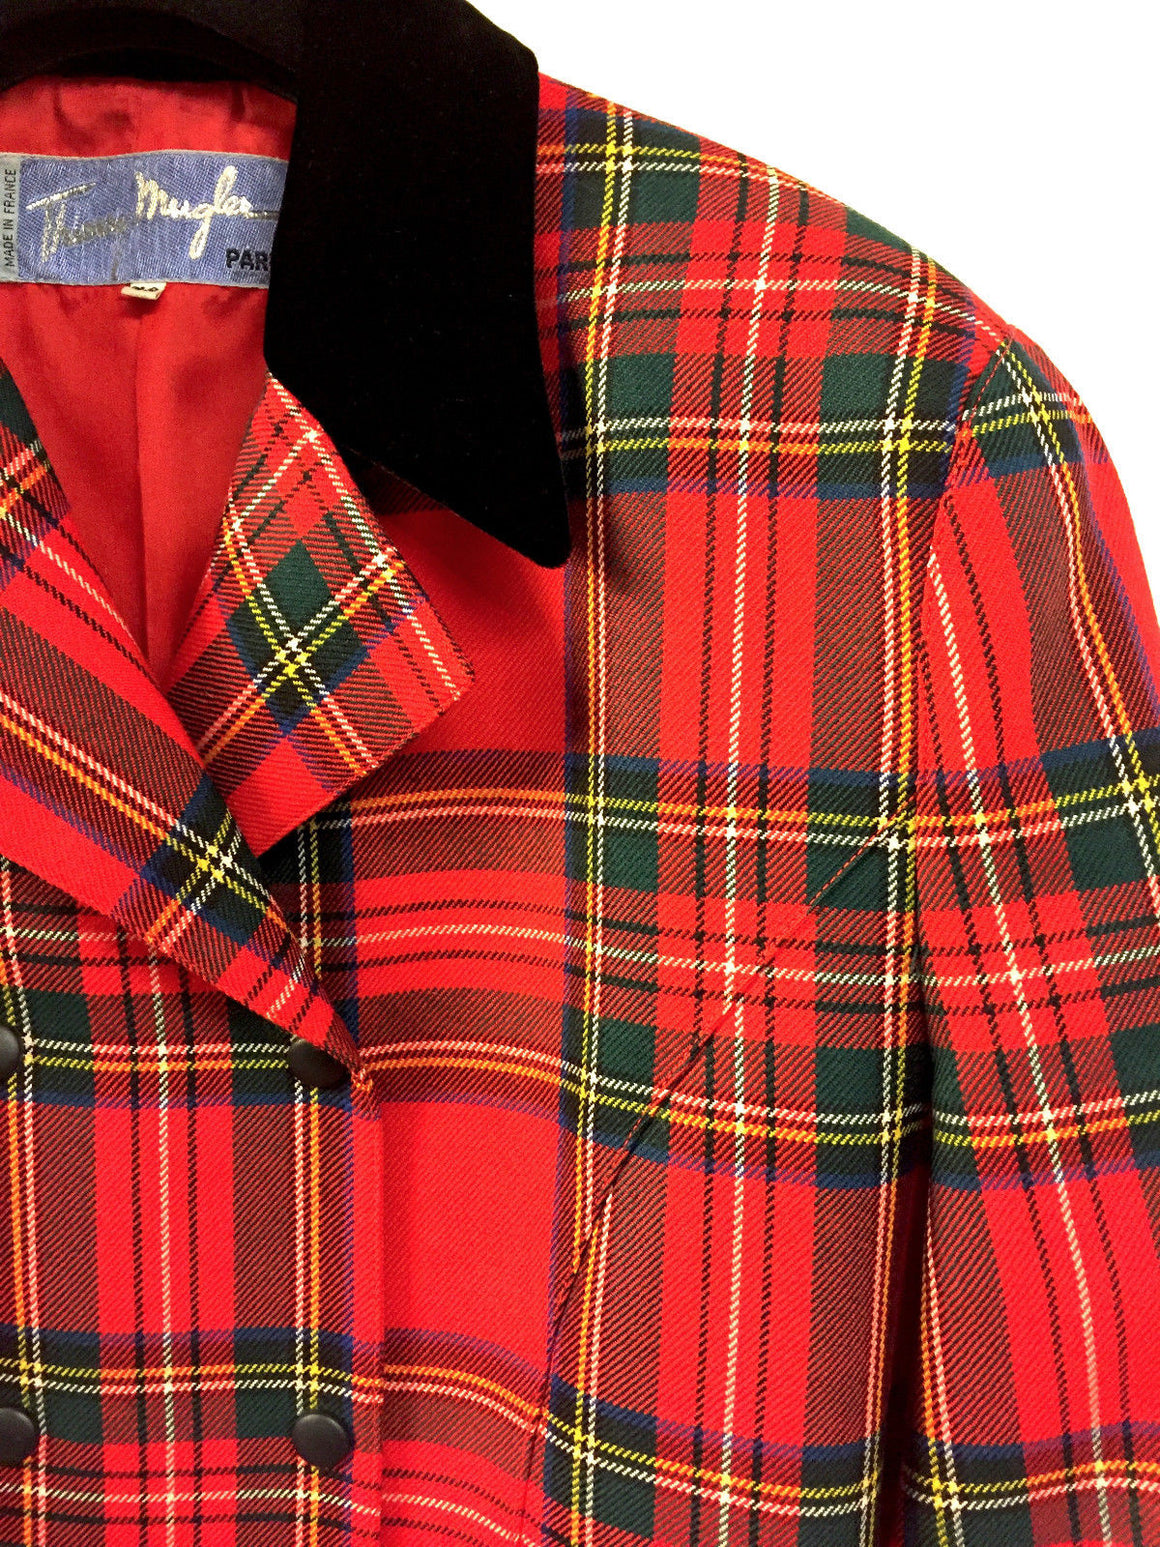 THIERRY MUGLER Vintage Red/Multicolor Plaid Wool Black Velvet Accents Jacket  Size: Fr42 / US10